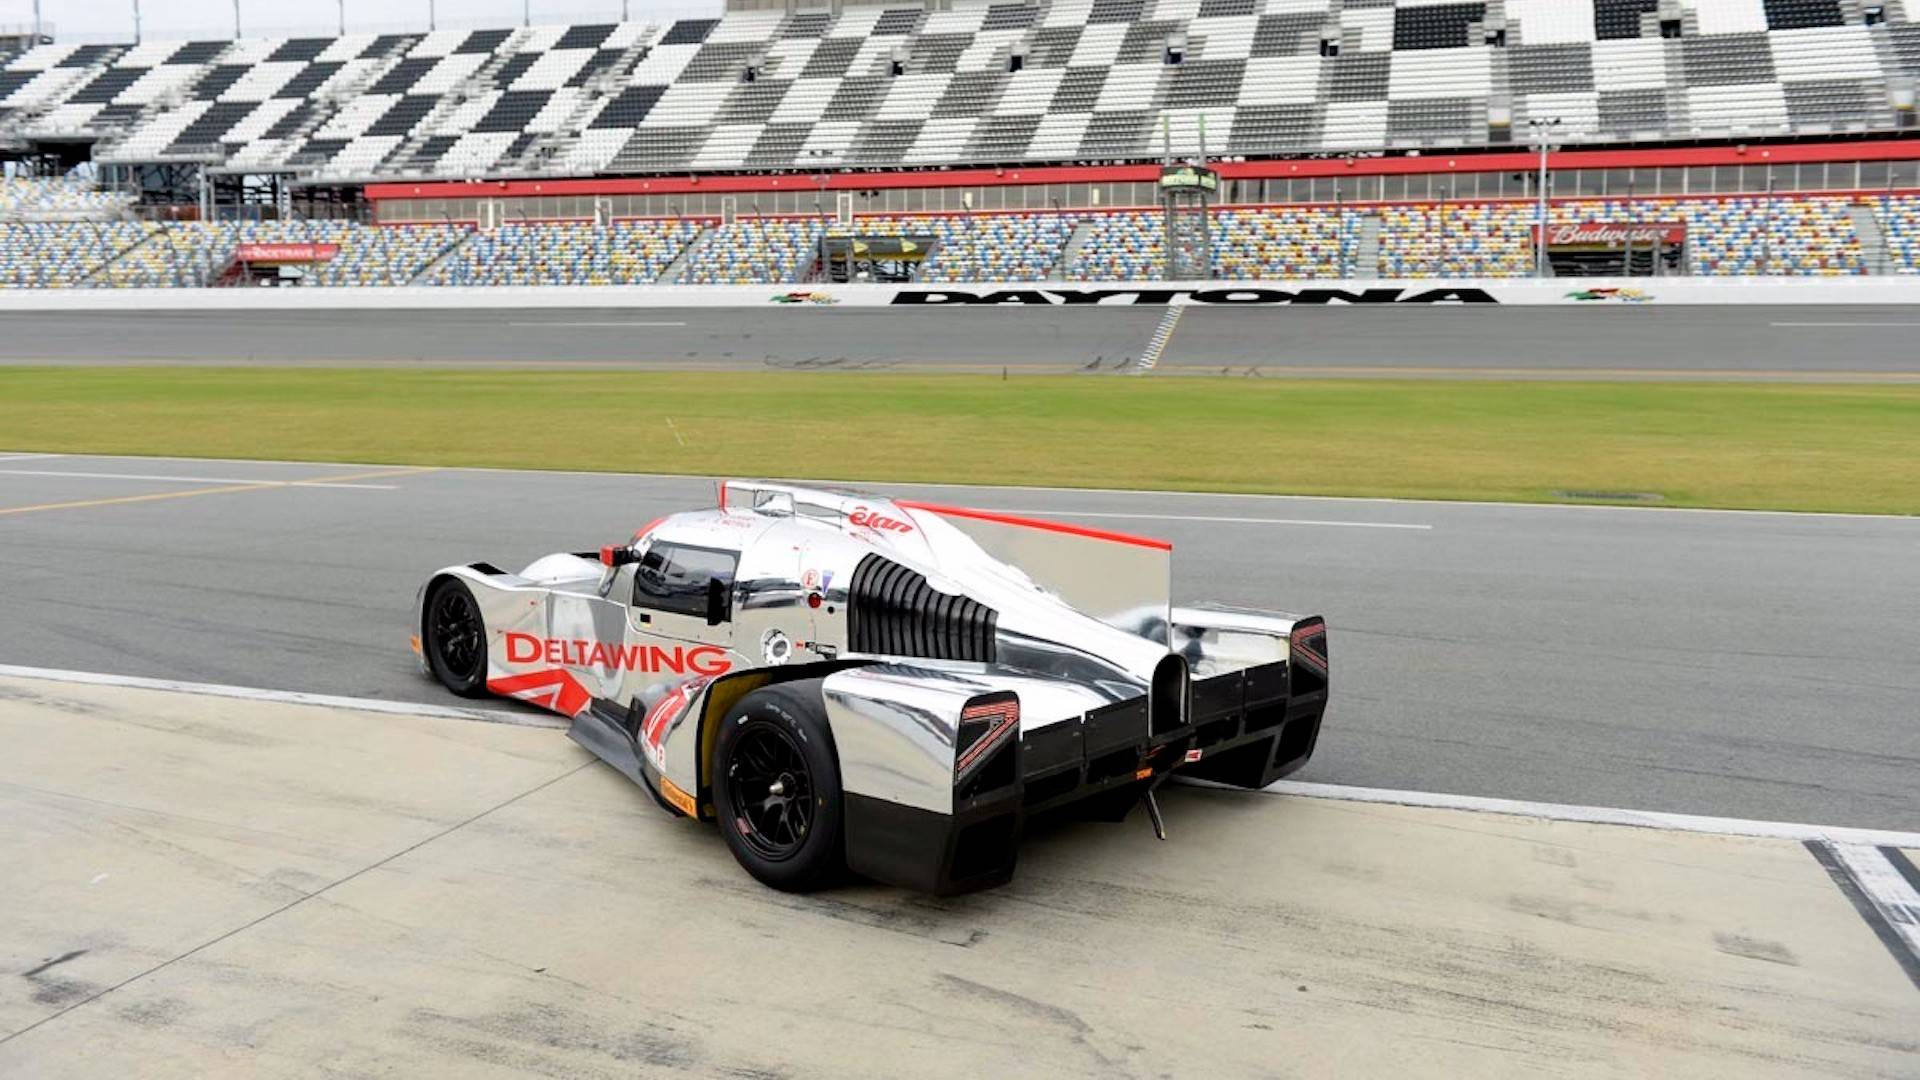 DeltaWing 2013 for sale (7)